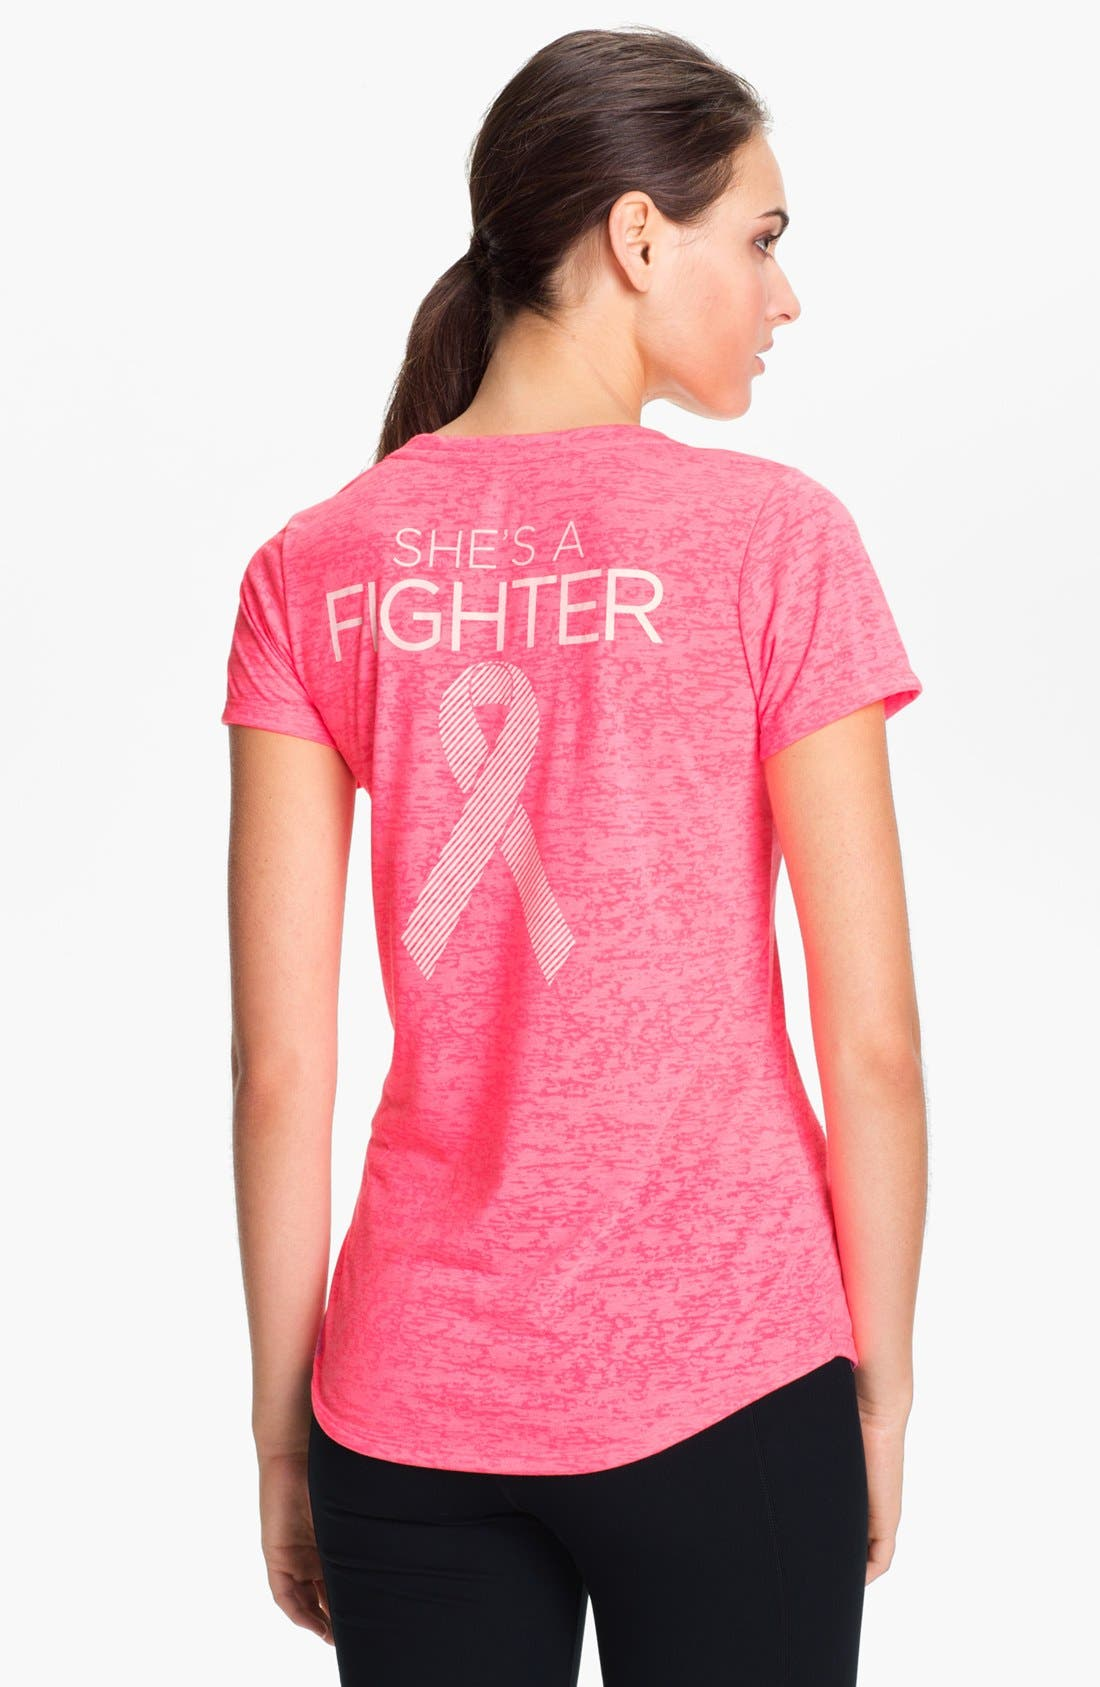 Alternate Image 1 Selected - Under Armour 'Power in Pink - She's a Fighter' Tee